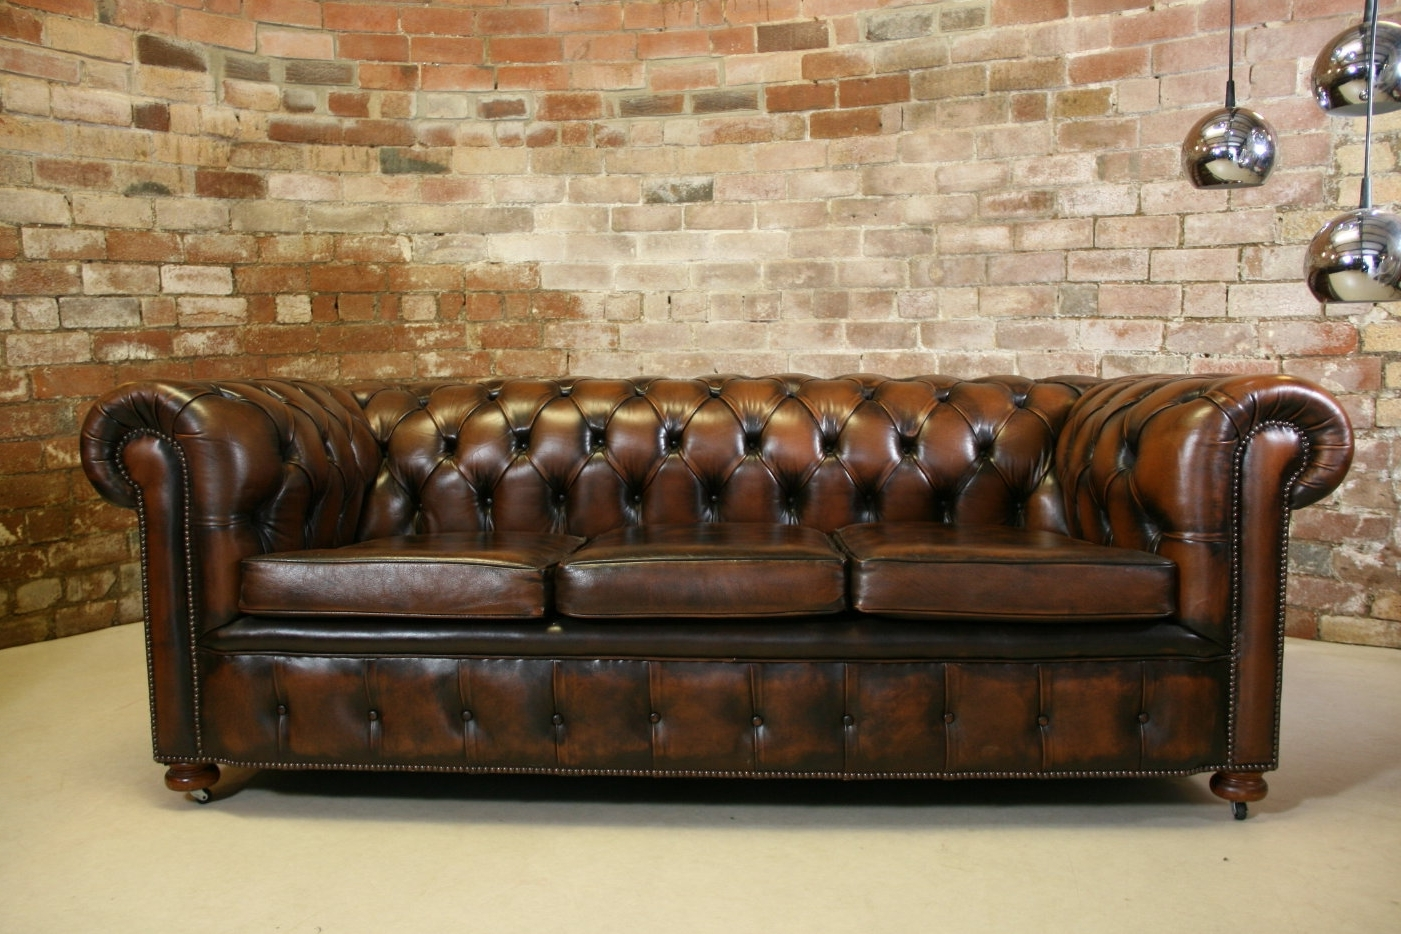 Vintage Chesterfield Sofas With Well Known Leather Chesterfield Sofa — Fabrizio Design : Clean And Bright (View 15 of 20)